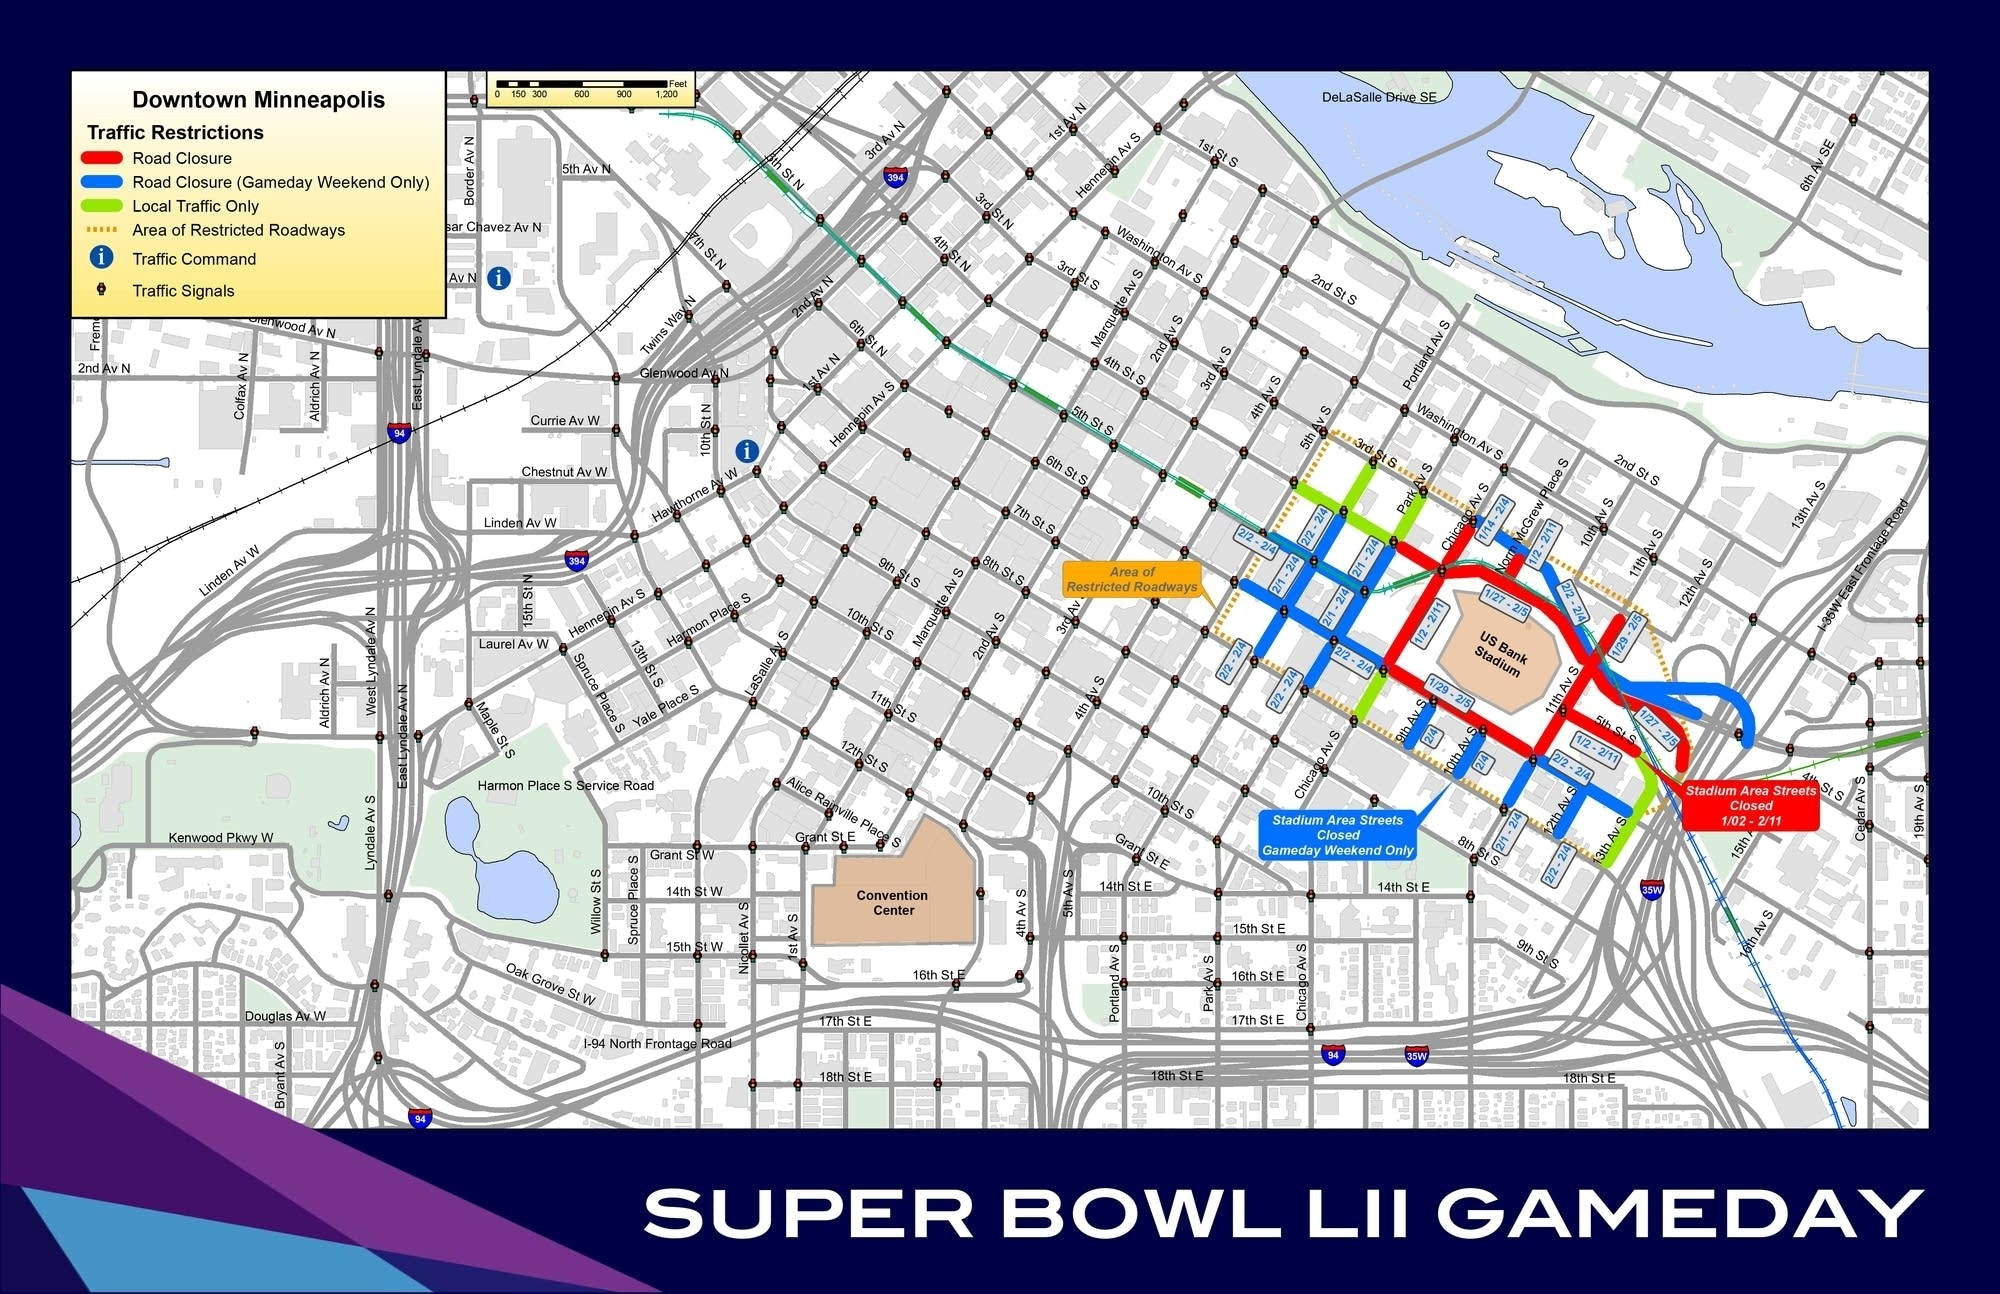 Metro Officials Release Road Closure, Transit Plans For with regard to Super Bowl 2019 Road Closures Map